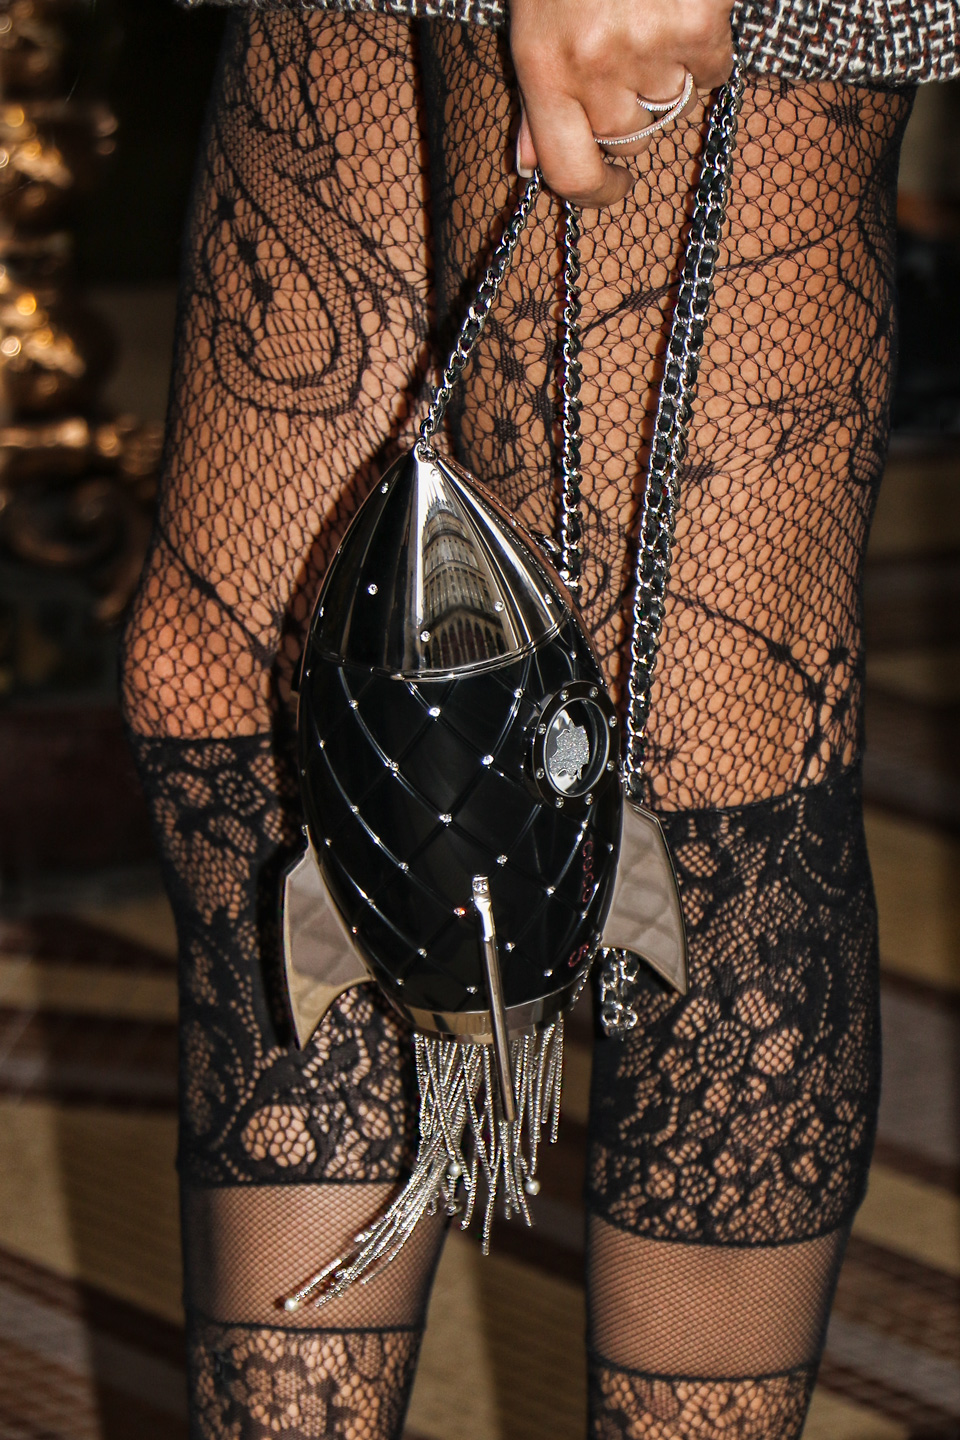 French Photographer Fashion Photography The Chanel Rocket Clutch